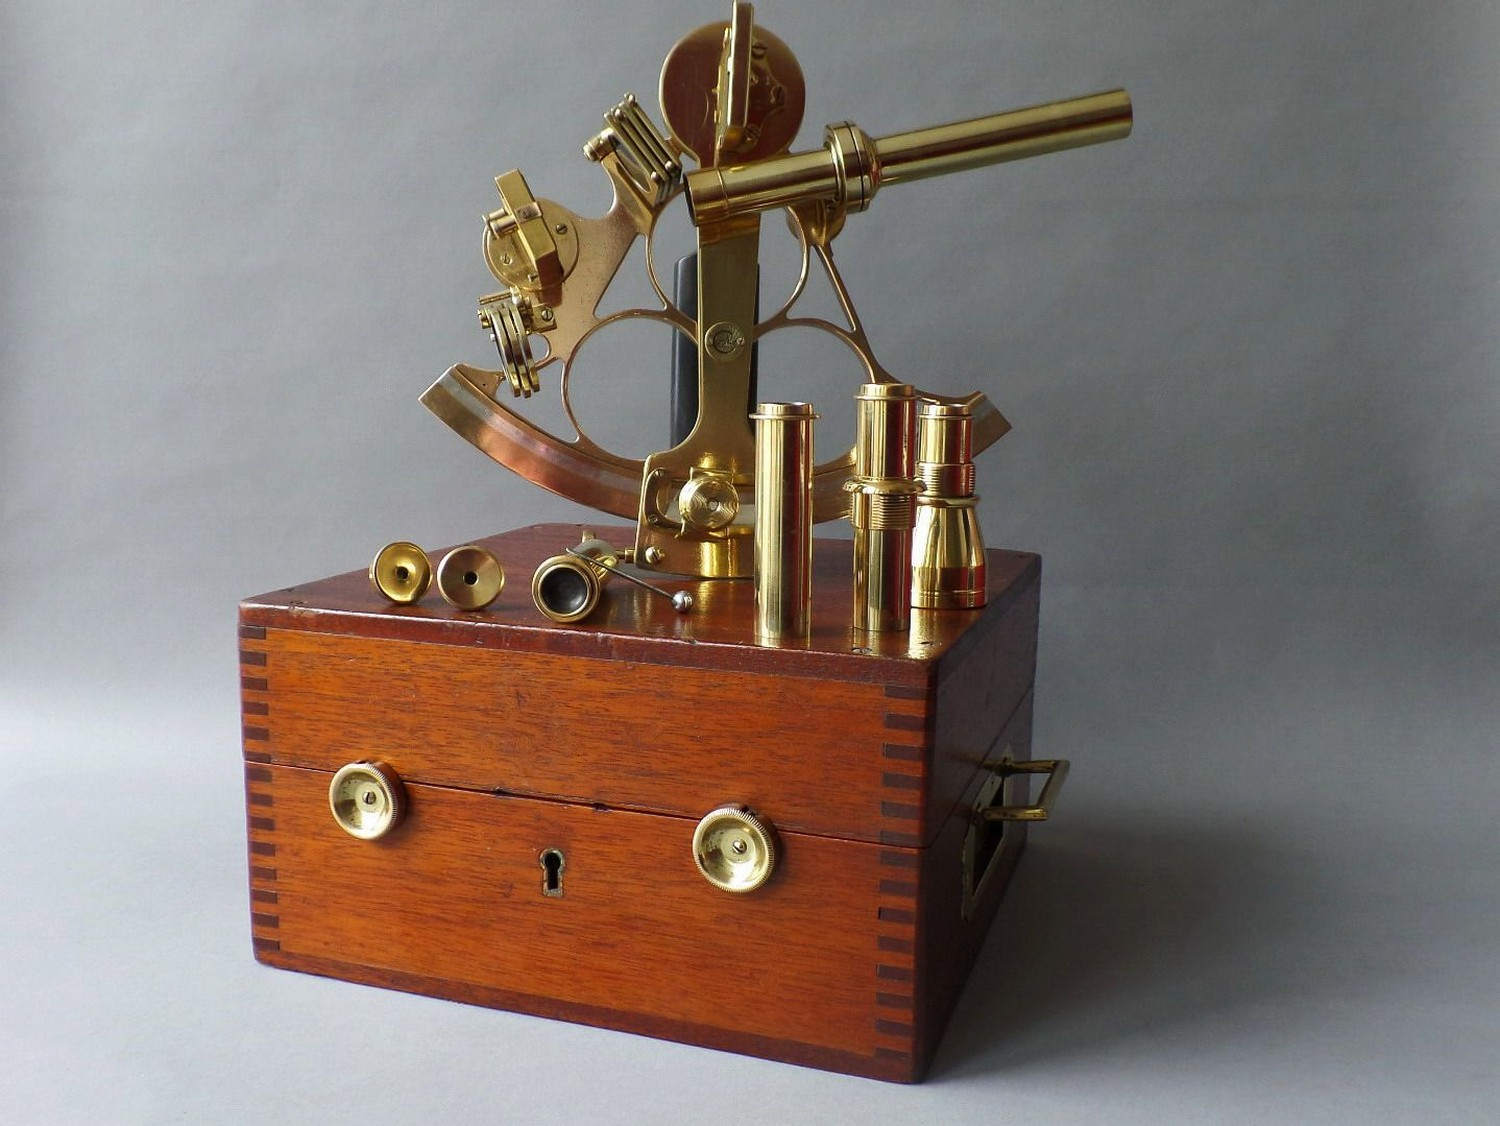 SEXTANT IN MAHOGANY-WOODEN TRAVELLING BOX HENRY HUGHES  CA. 1900